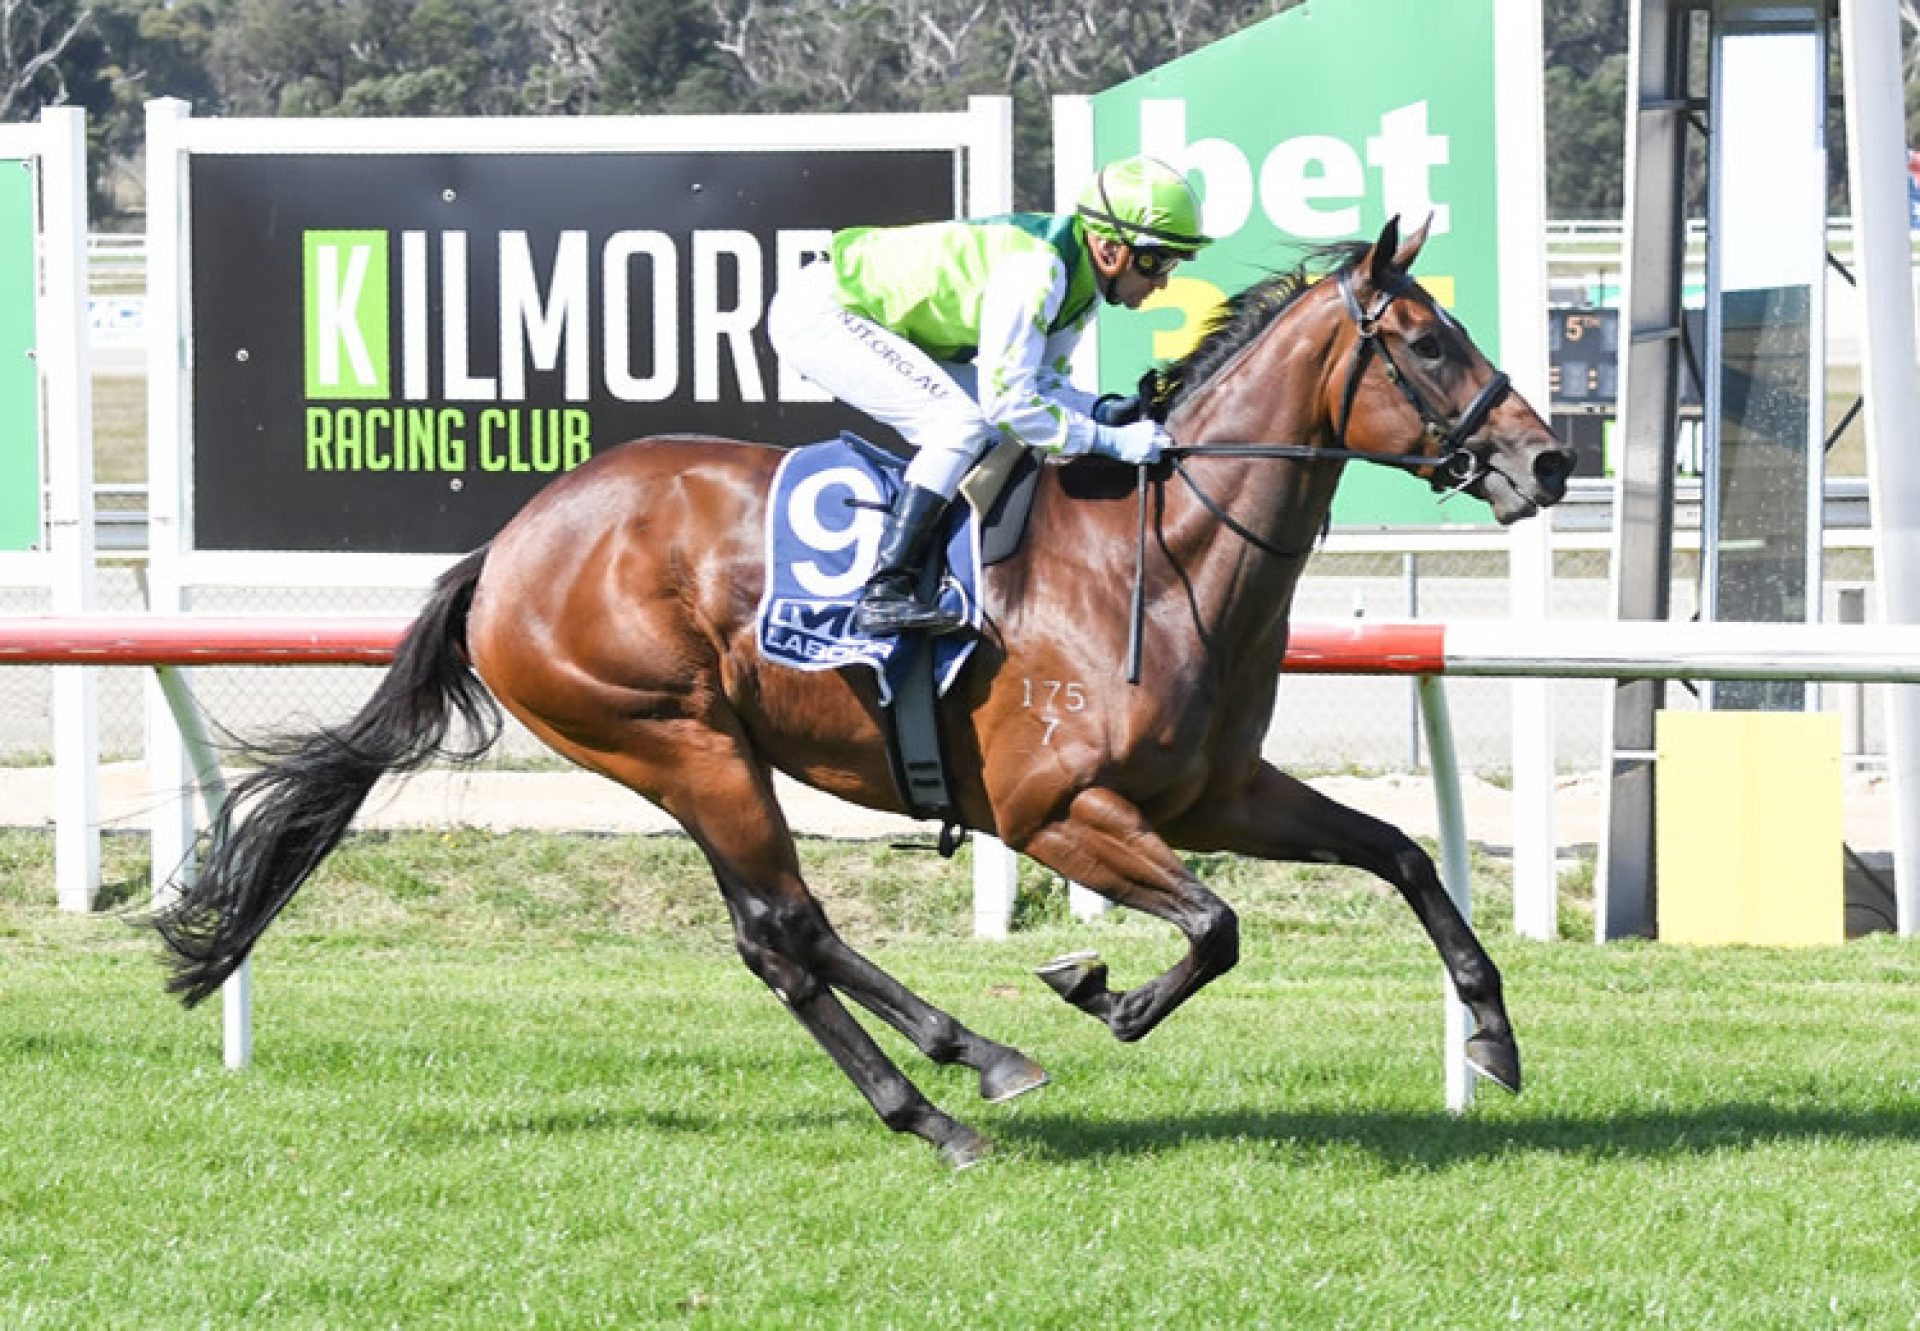 Transplant (Pride Of Dubai) winning at Kilmore